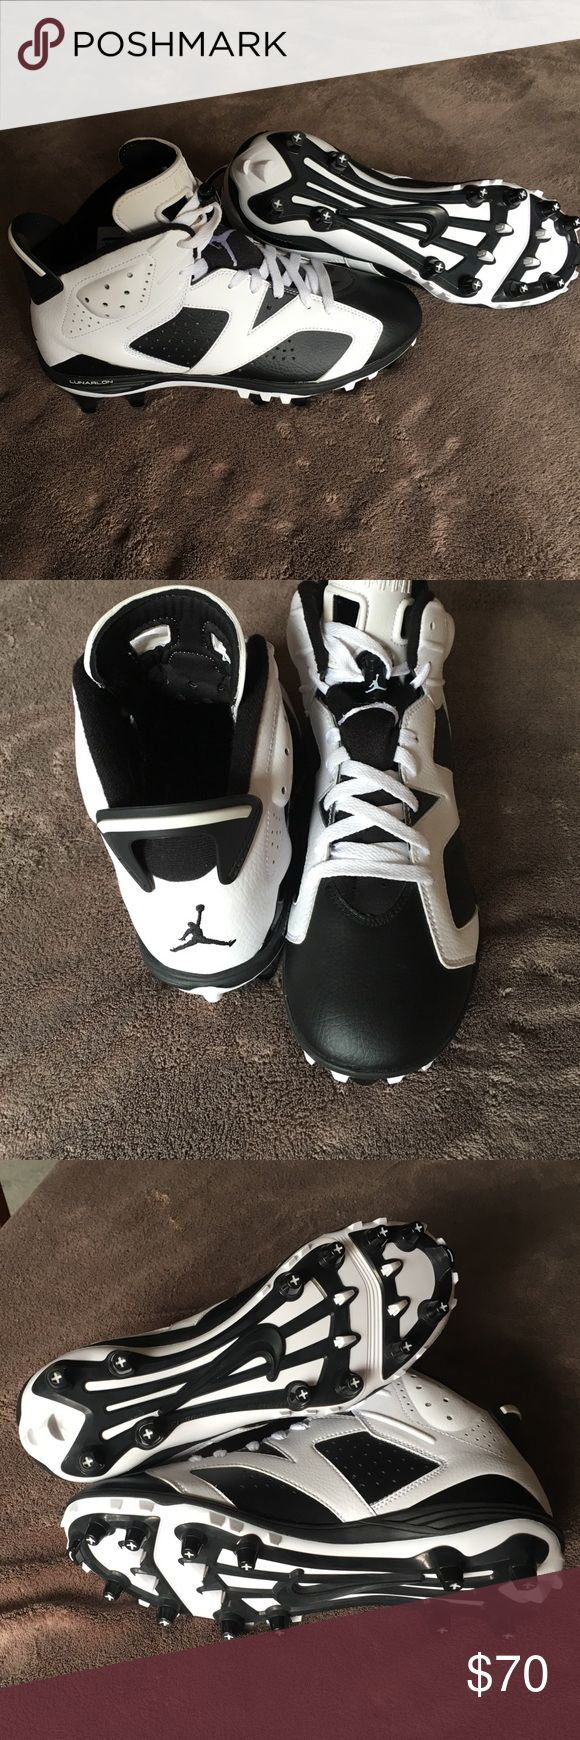 Jordan 6 Football cleats Jordan 6 football cleats. Never worn but no box Air Jordan Shoes Athletic Shoes